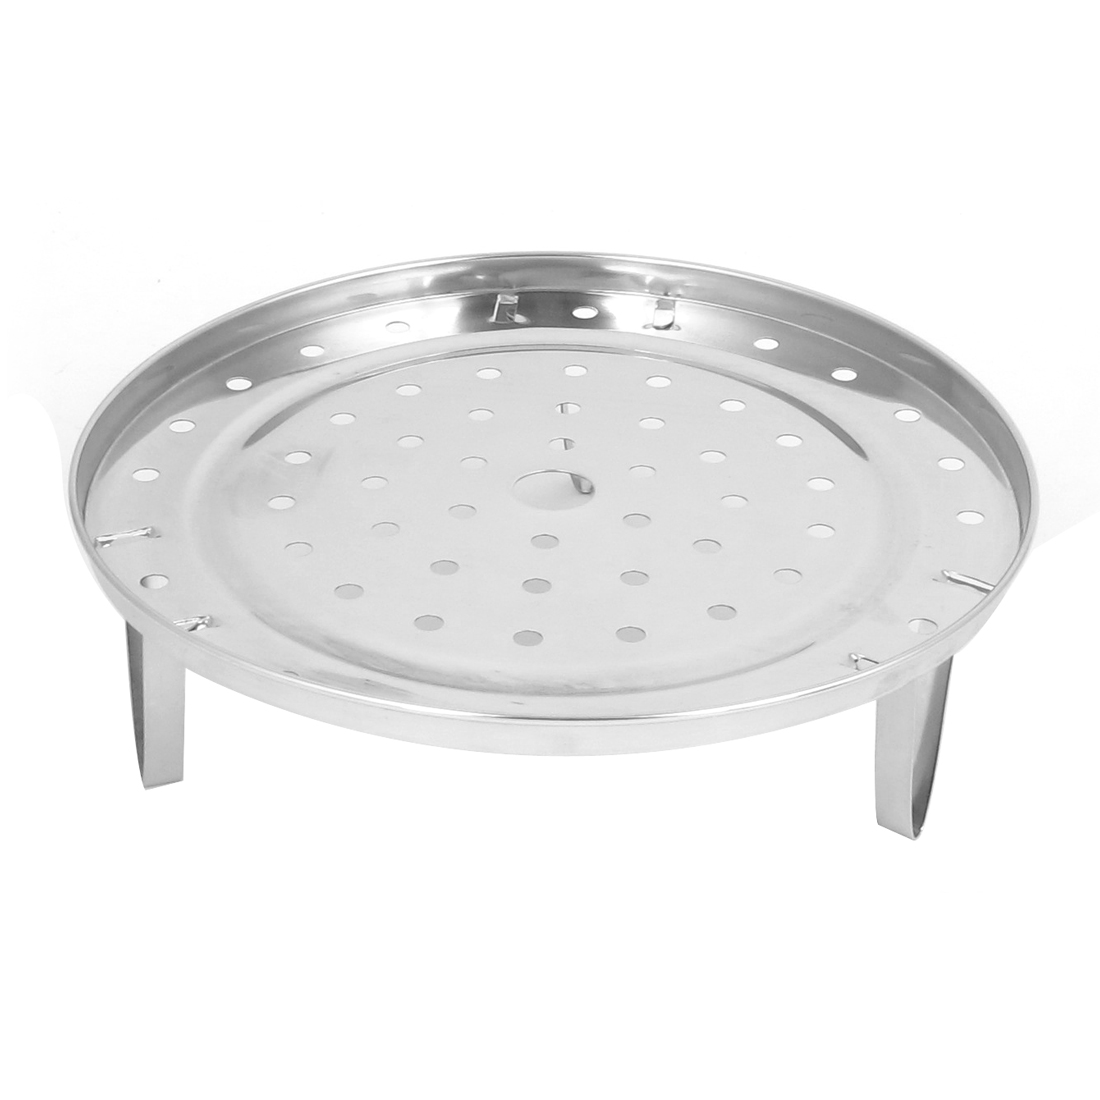 Kitchen 21cm Dia Metal Bread Food Cooking Steaming Steamer Rack Plate w Stand